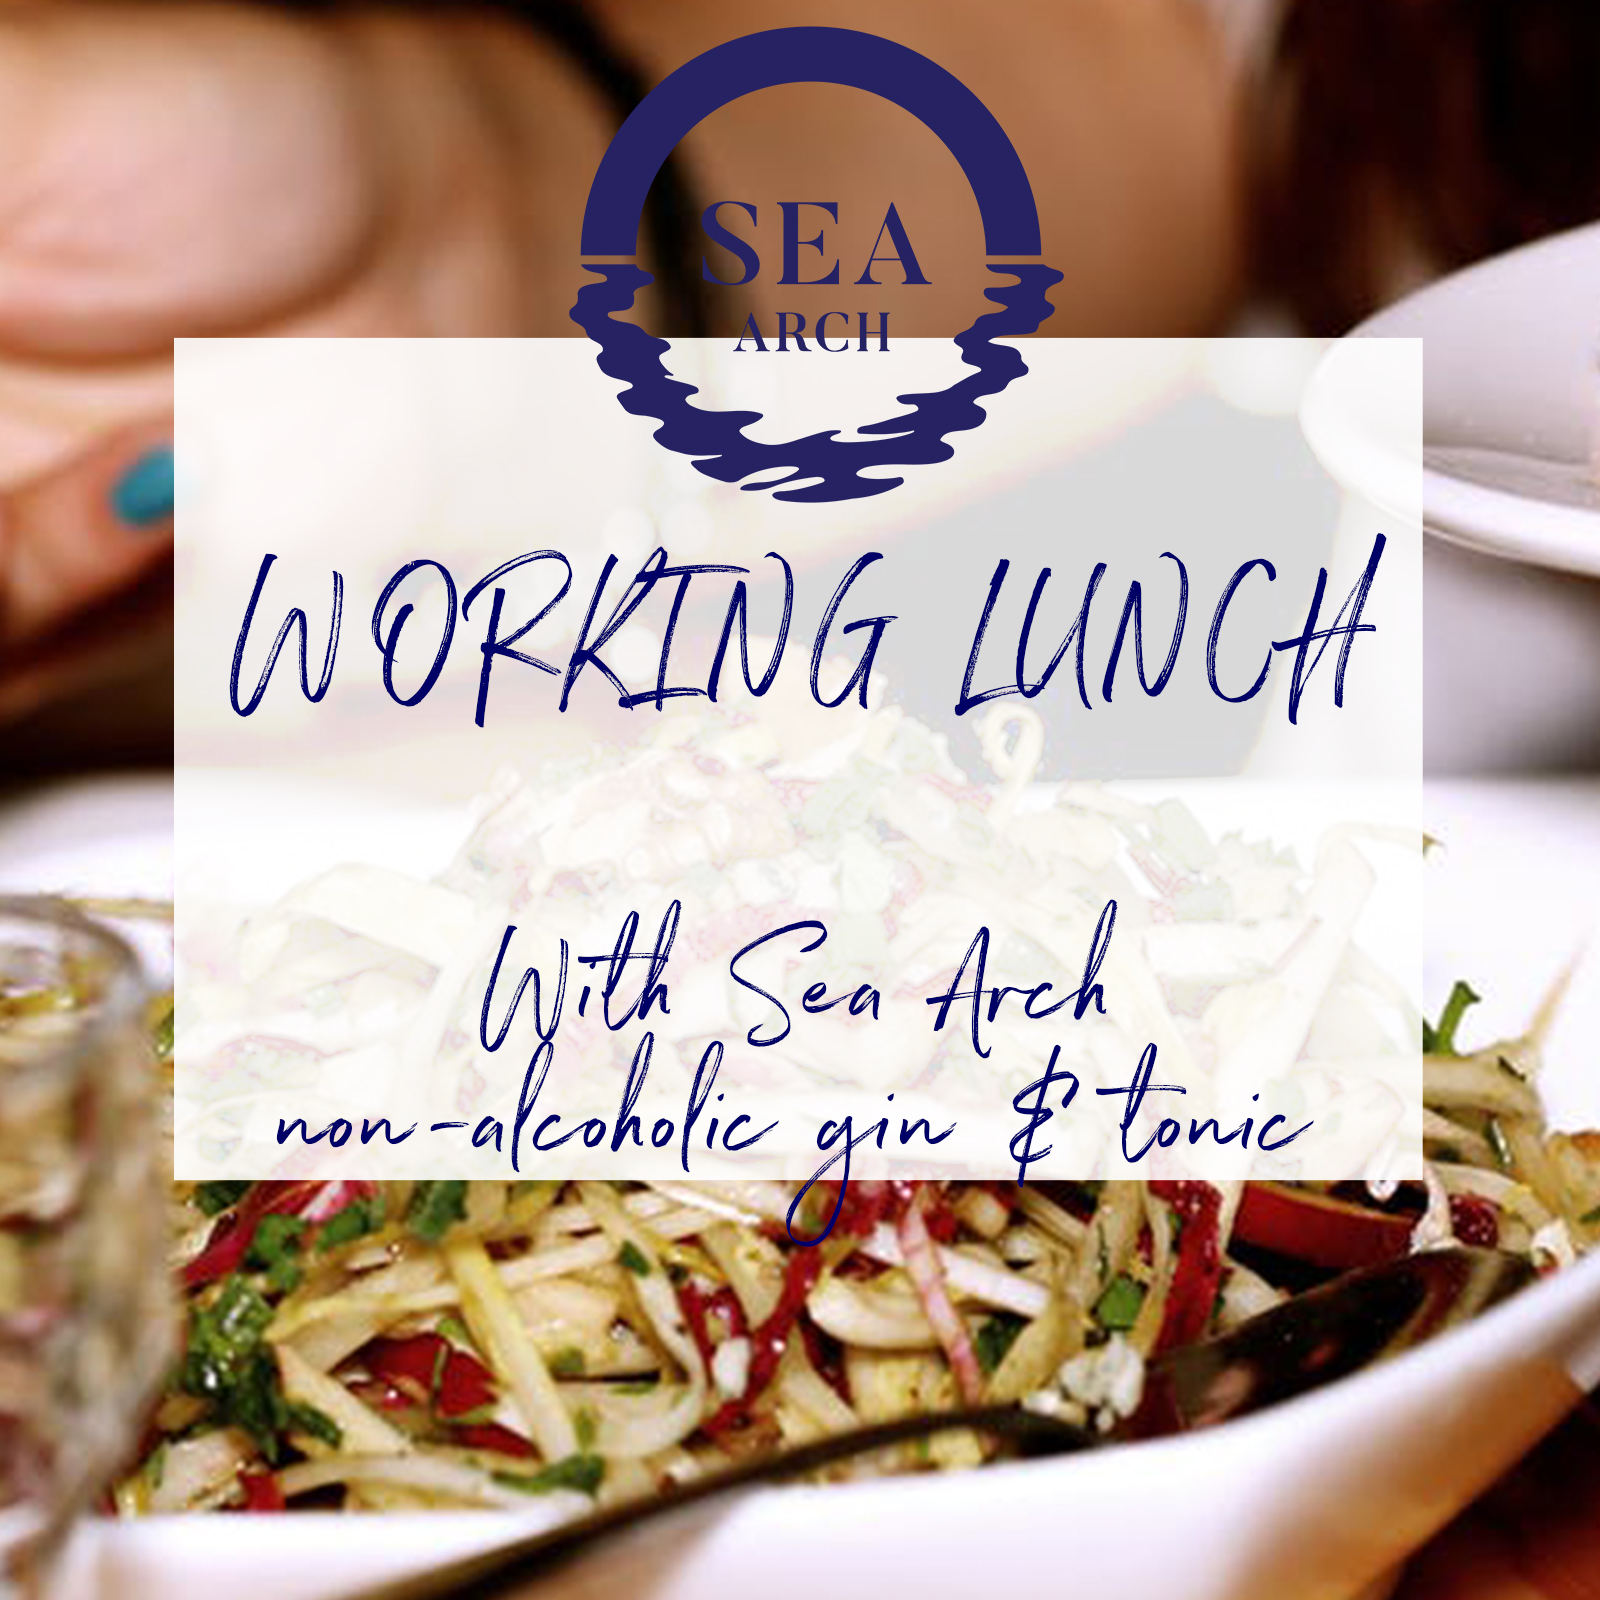 Working lunch with non-alcoholic drinks